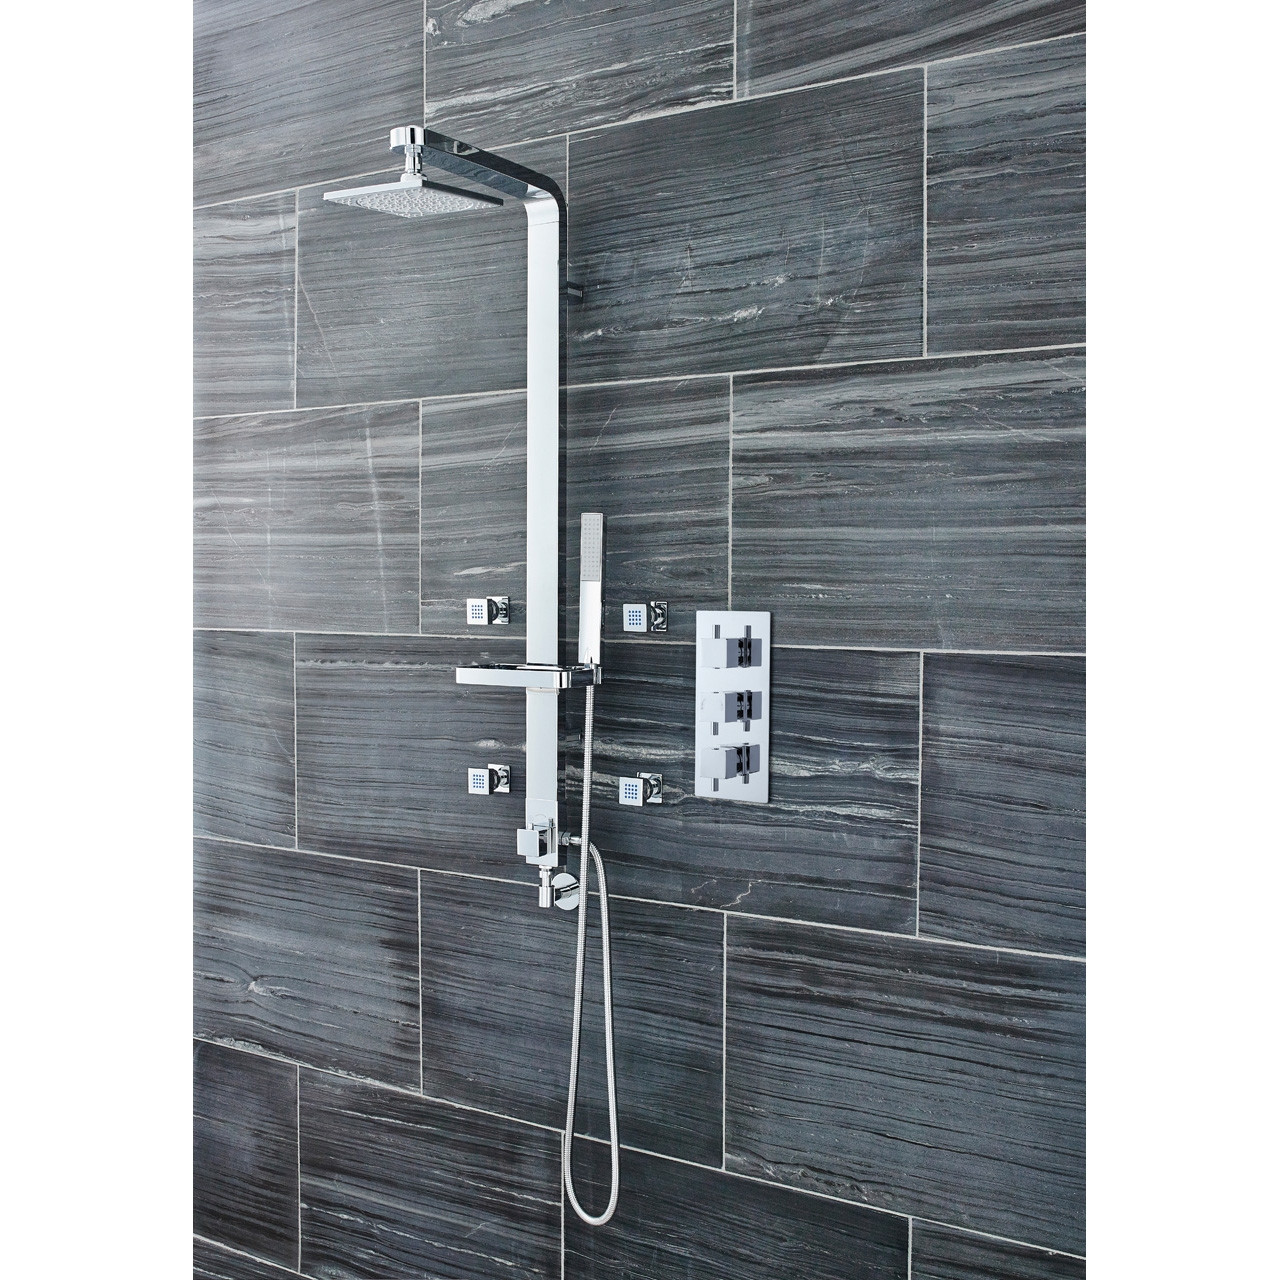 Ultra Triple Concealed Thermostatic Shower Valve - JTY303